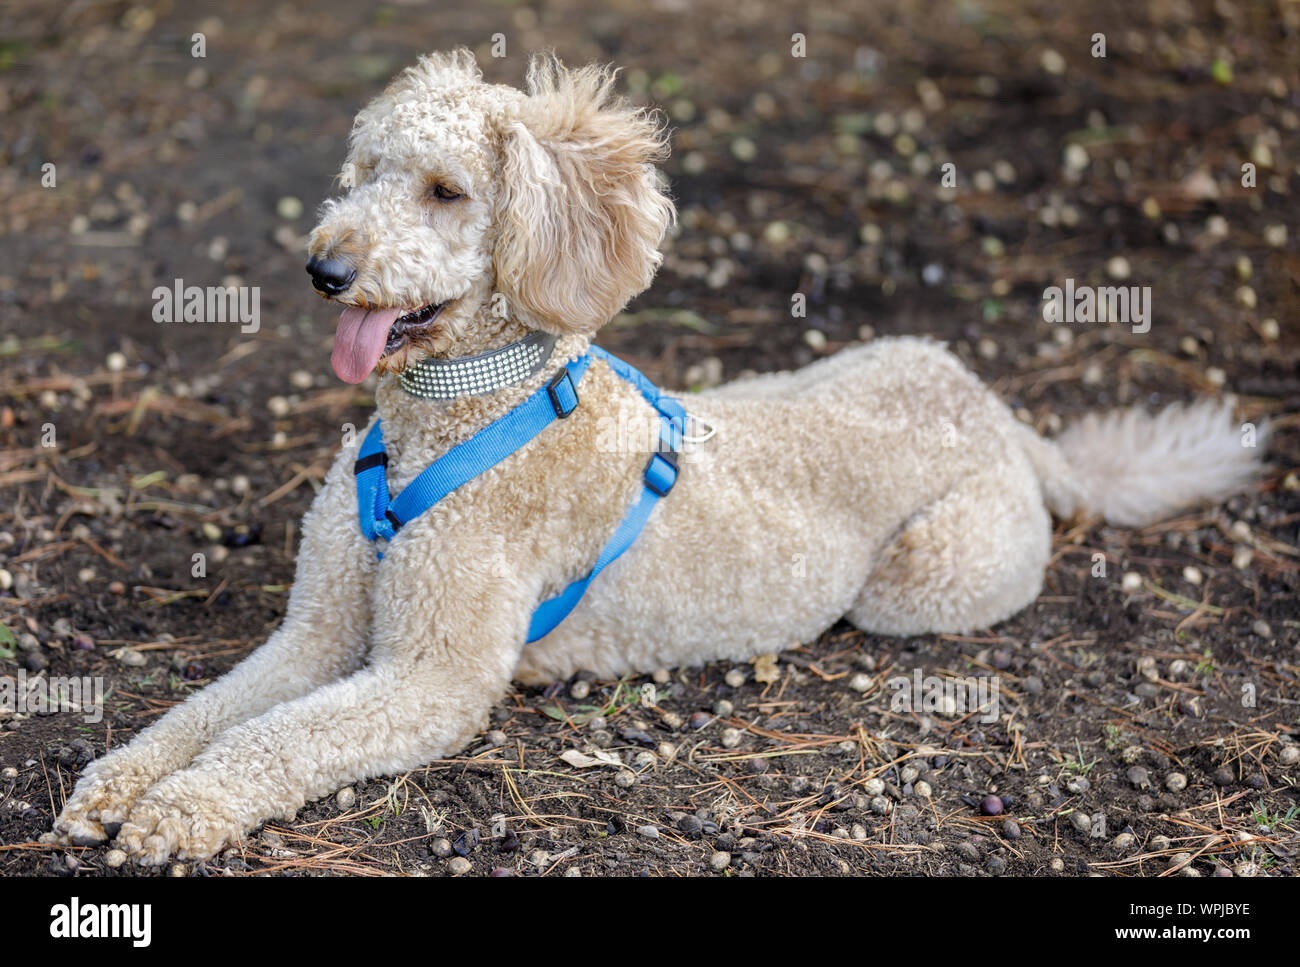 Labradoodle (Labrador retriever and poodle cross breed) lying down. Off-leash dog park in Northern California. Stock Photo